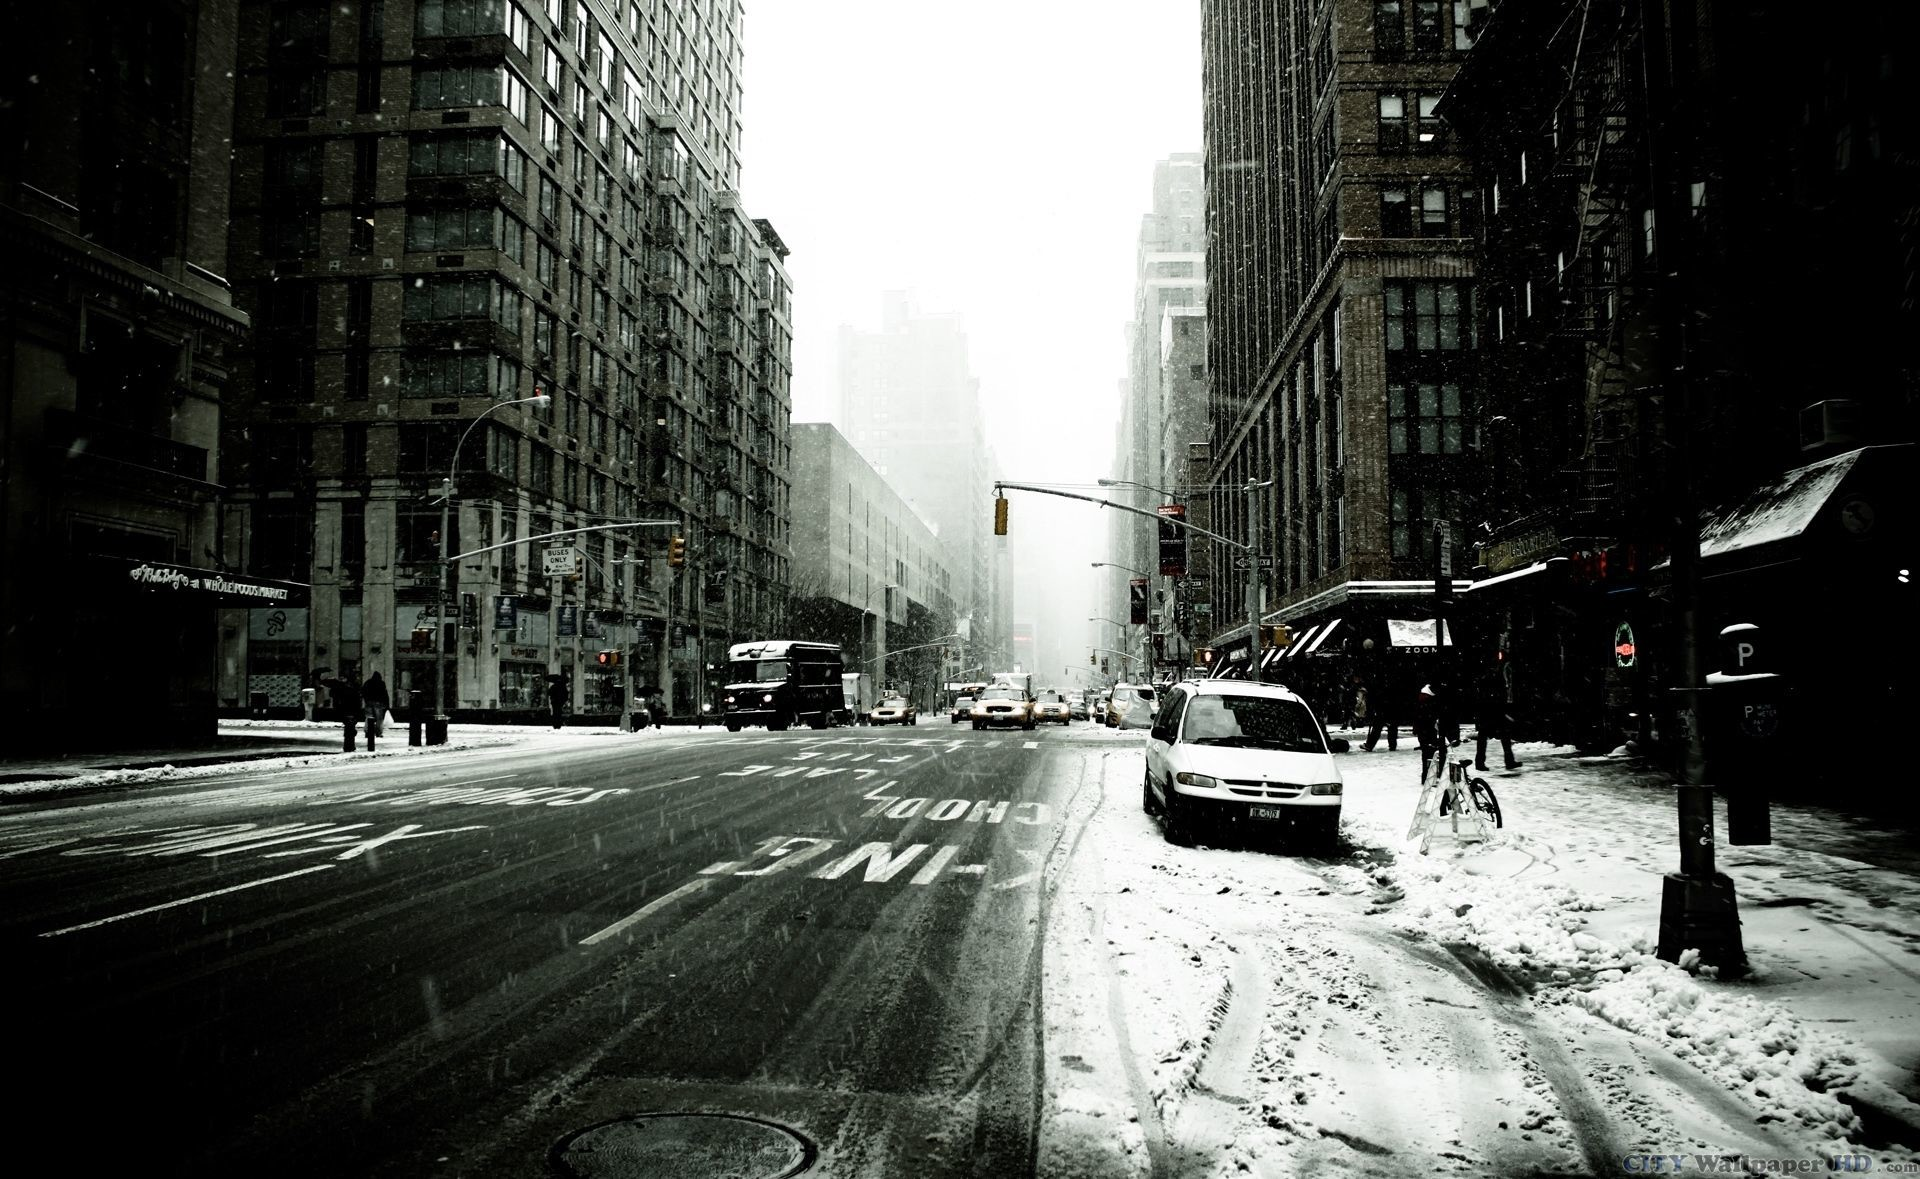 Black and white photo of a snowy, frosty New York